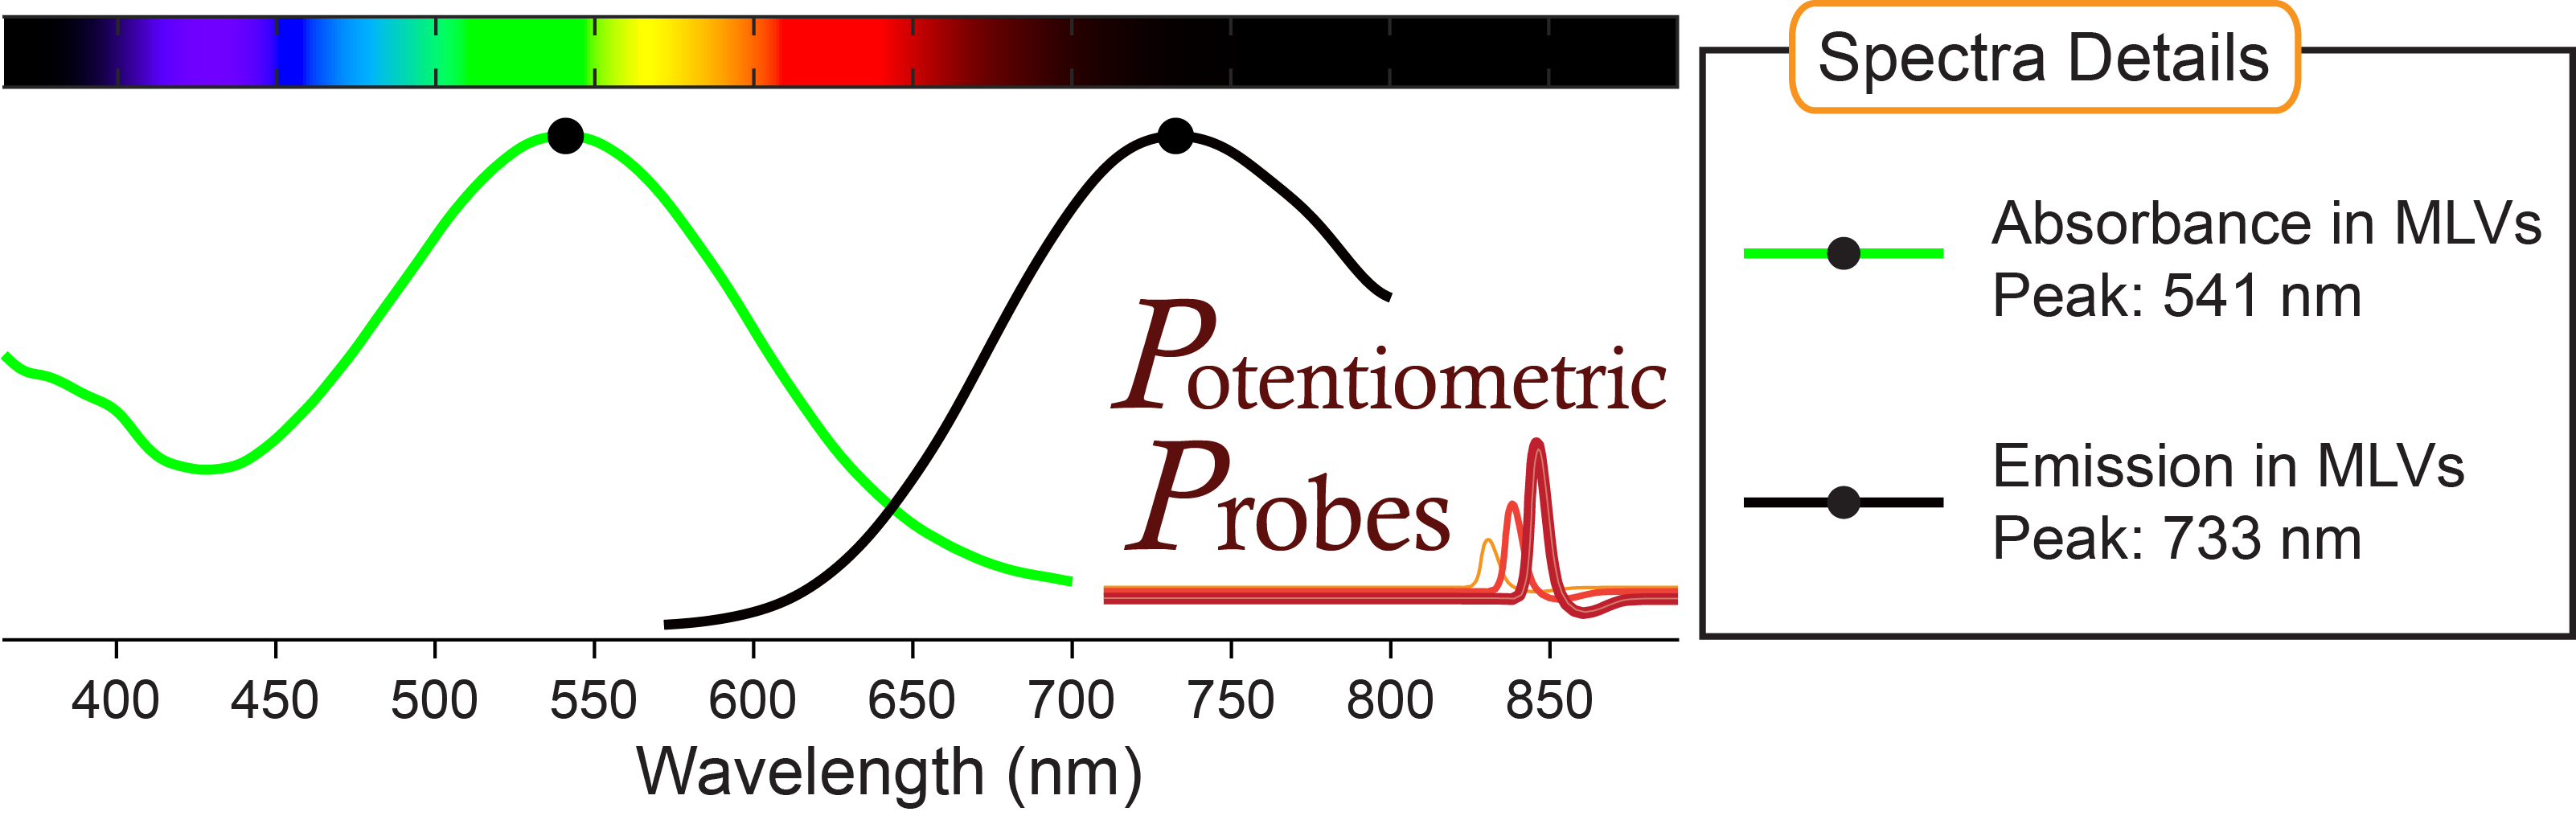 Spectra of voltage-sensitive dye Di-4-ANBDQPQ from Potentiometric Probes